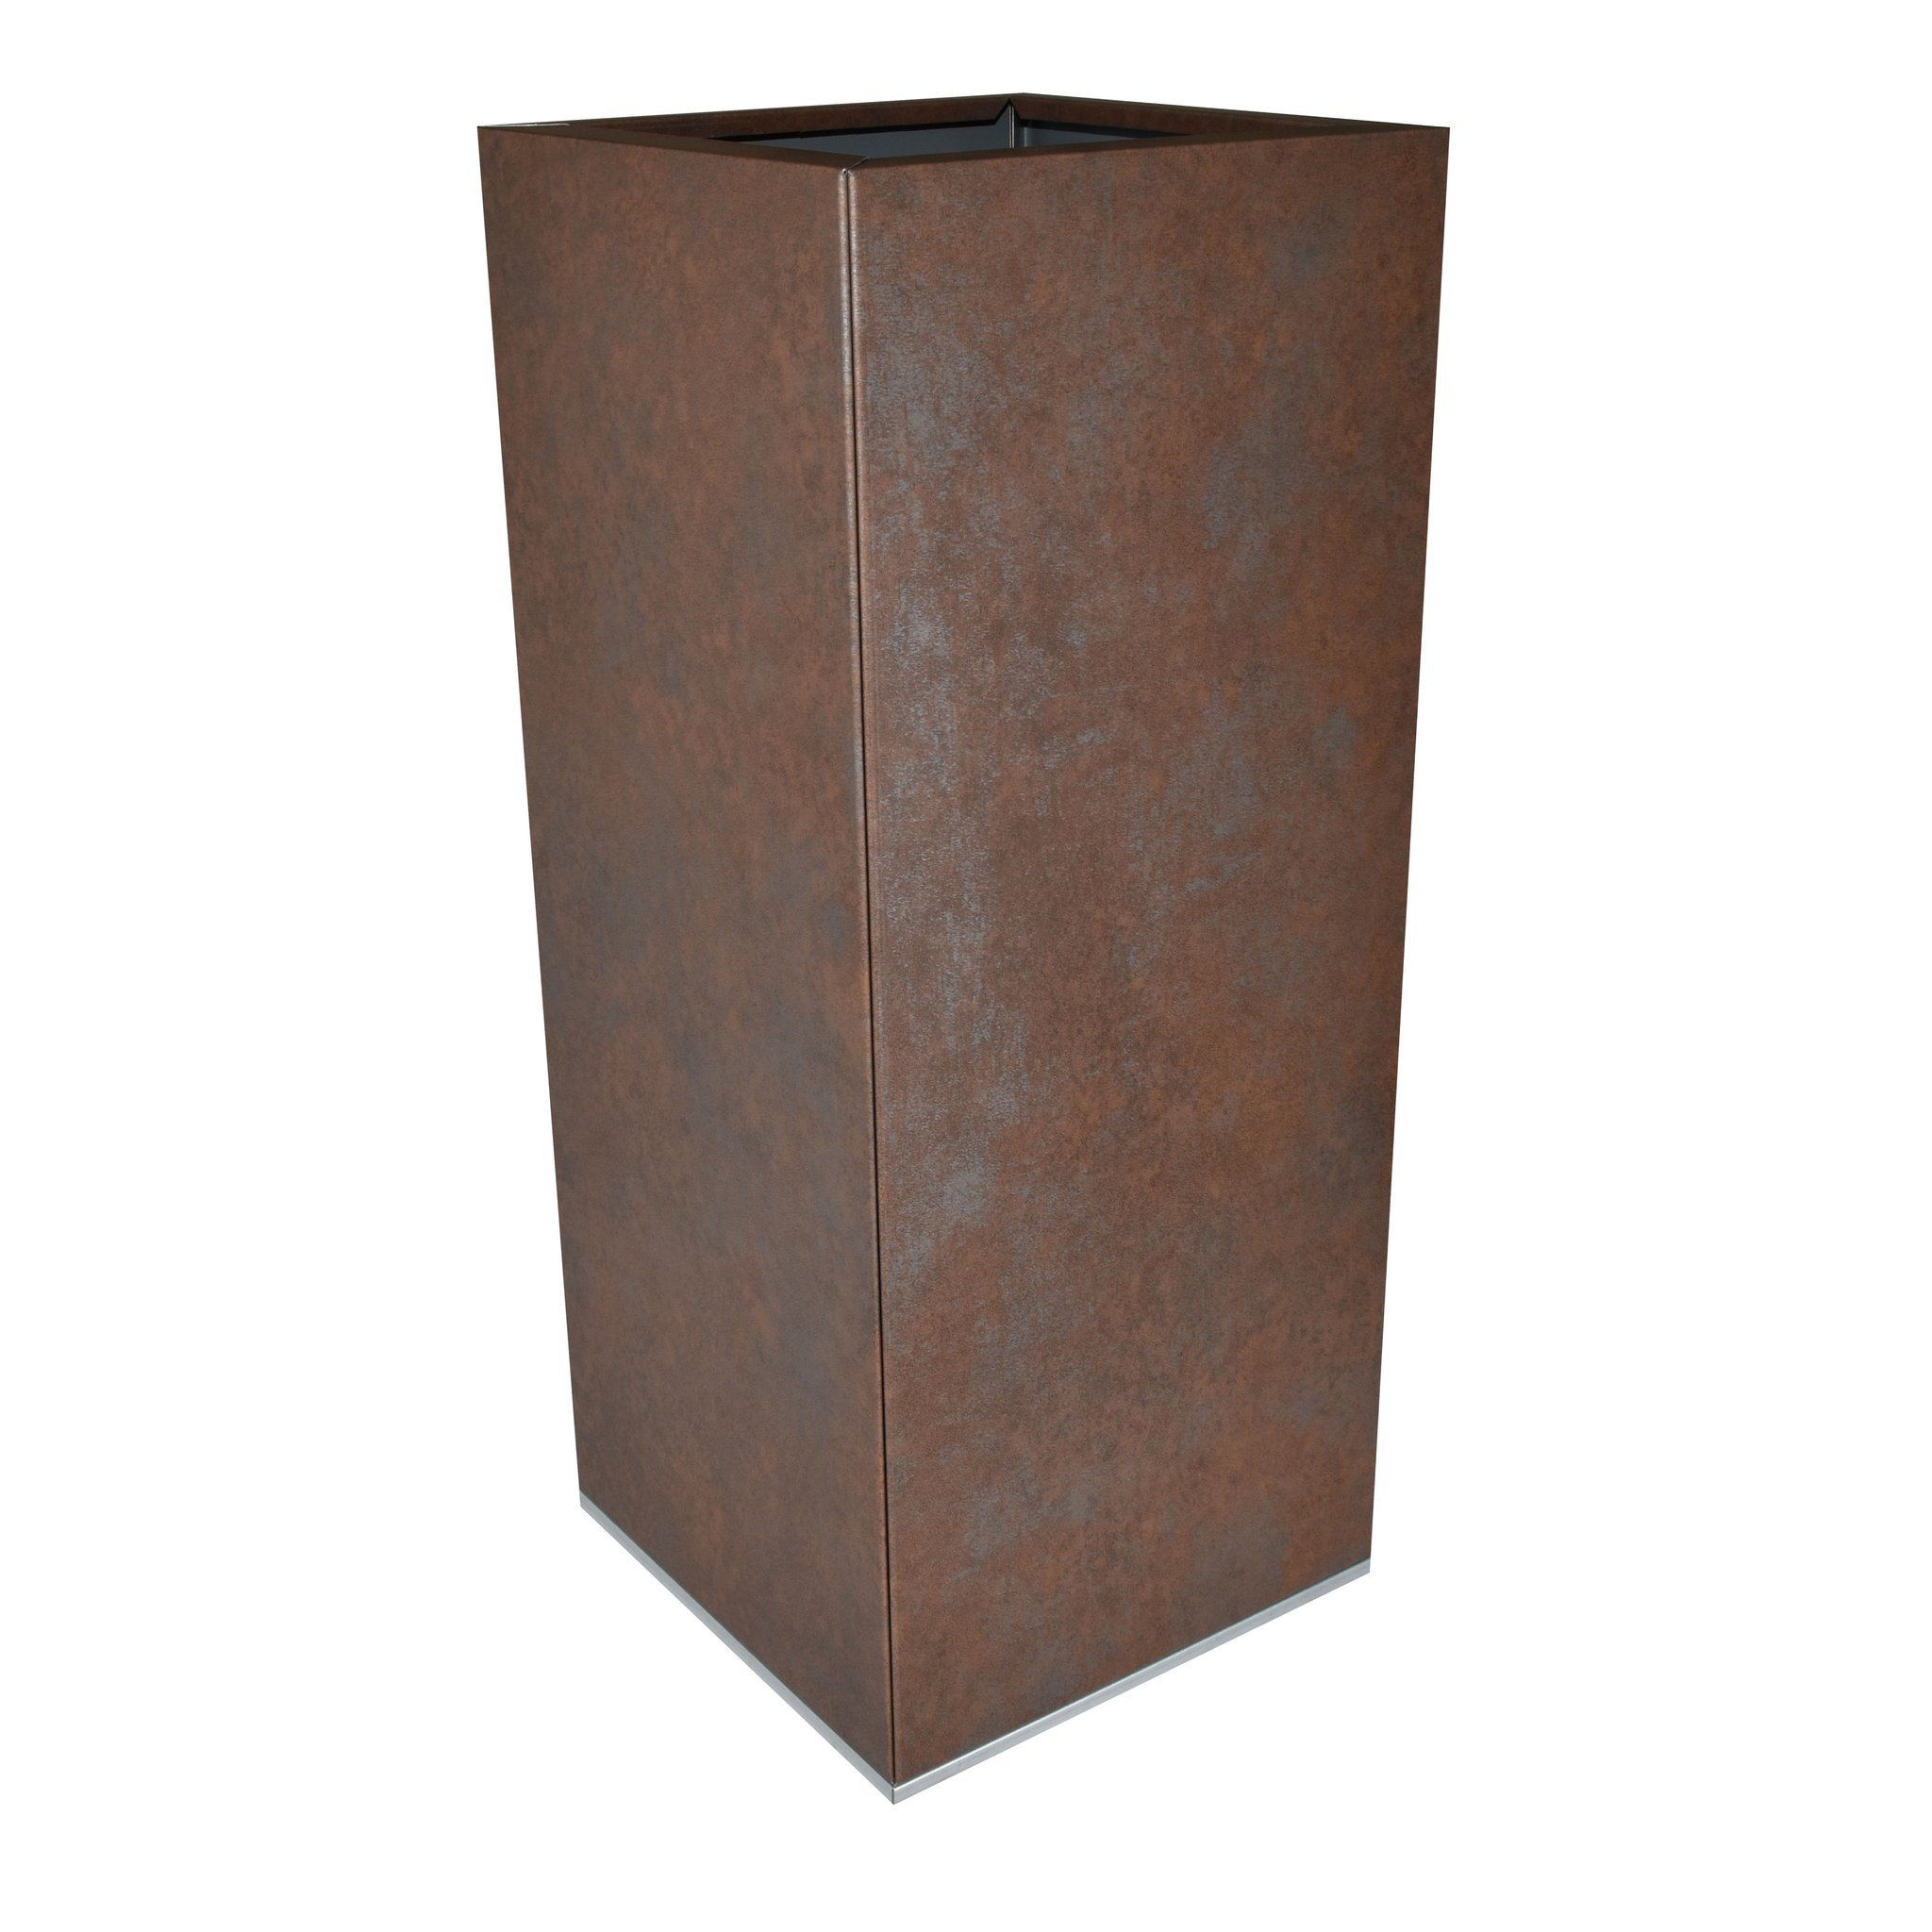 Square weathered iron-look pot